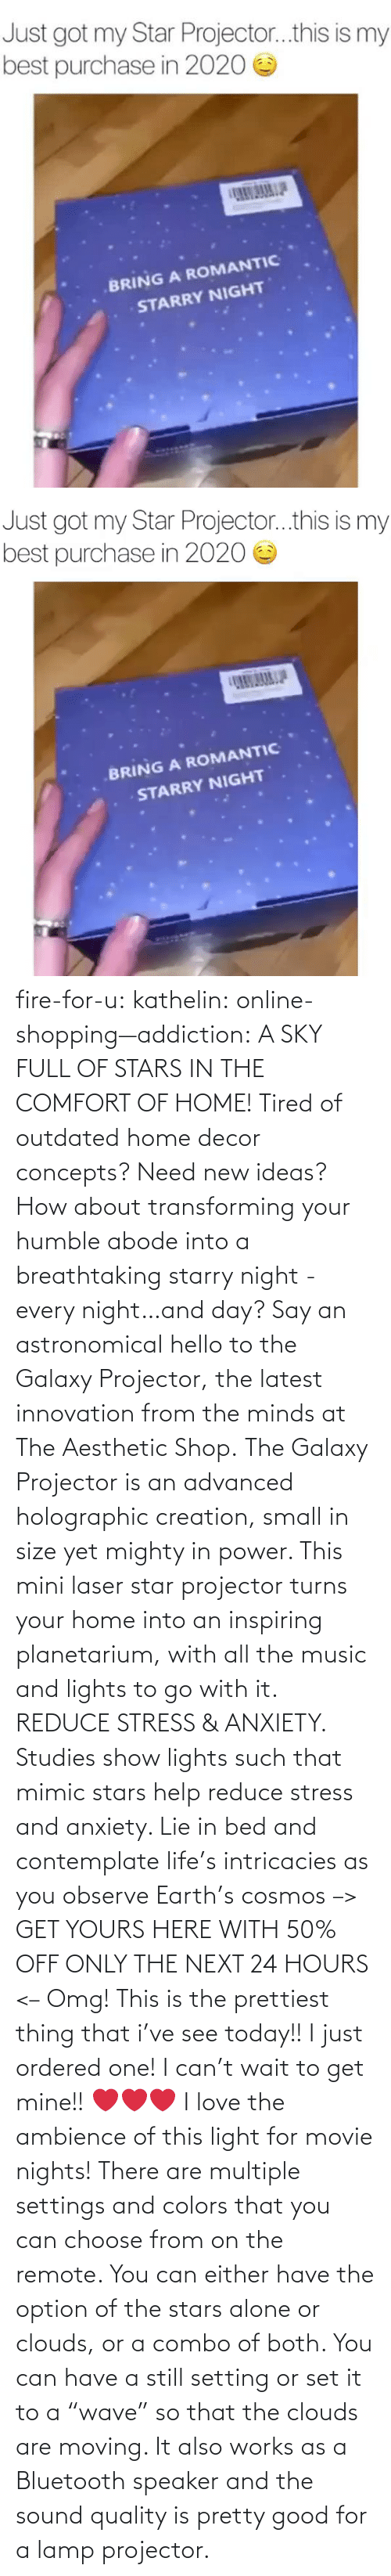 "latest: fire-for-u:  kathelin: online-shopping—addiction:  A SKY FULL OF STARS IN THE COMFORT OF HOME! Tired of outdated home decor concepts? Need new ideas? How about transforming your humble abode into a breathtaking starry night - every night…and day? Say an astronomical hello to the Galaxy Projector, the latest innovation from the minds at The Aesthetic Shop. The Galaxy Projector is an advanced holographic creation, small in size yet mighty in power. This mini laser star projector turns your home into an inspiring planetarium, with all the music and lights to go with it. REDUCE STRESS & ANXIETY. Studies show lights such that mimic stars help reduce stress and anxiety. Lie in bed and contemplate life's intricacies as you observe Earth's cosmos  –> GET YOURS HERE WITH 50% OFF ONLY THE NEXT 24 HOURS <–   Omg! This is the prettiest thing that i've see today!! I just ordered one! I can't wait to get mine!! ❤️️❤️️❤️️  I love the ambience of this light for movie nights! There are multiple settings and colors that you can choose from on the remote. You can either have the option of the stars alone or clouds, or a combo of both. You can have a still setting or set it to a ""wave"" so that the clouds are moving. It also works as a Bluetooth speaker and the sound quality is pretty good for a lamp projector."